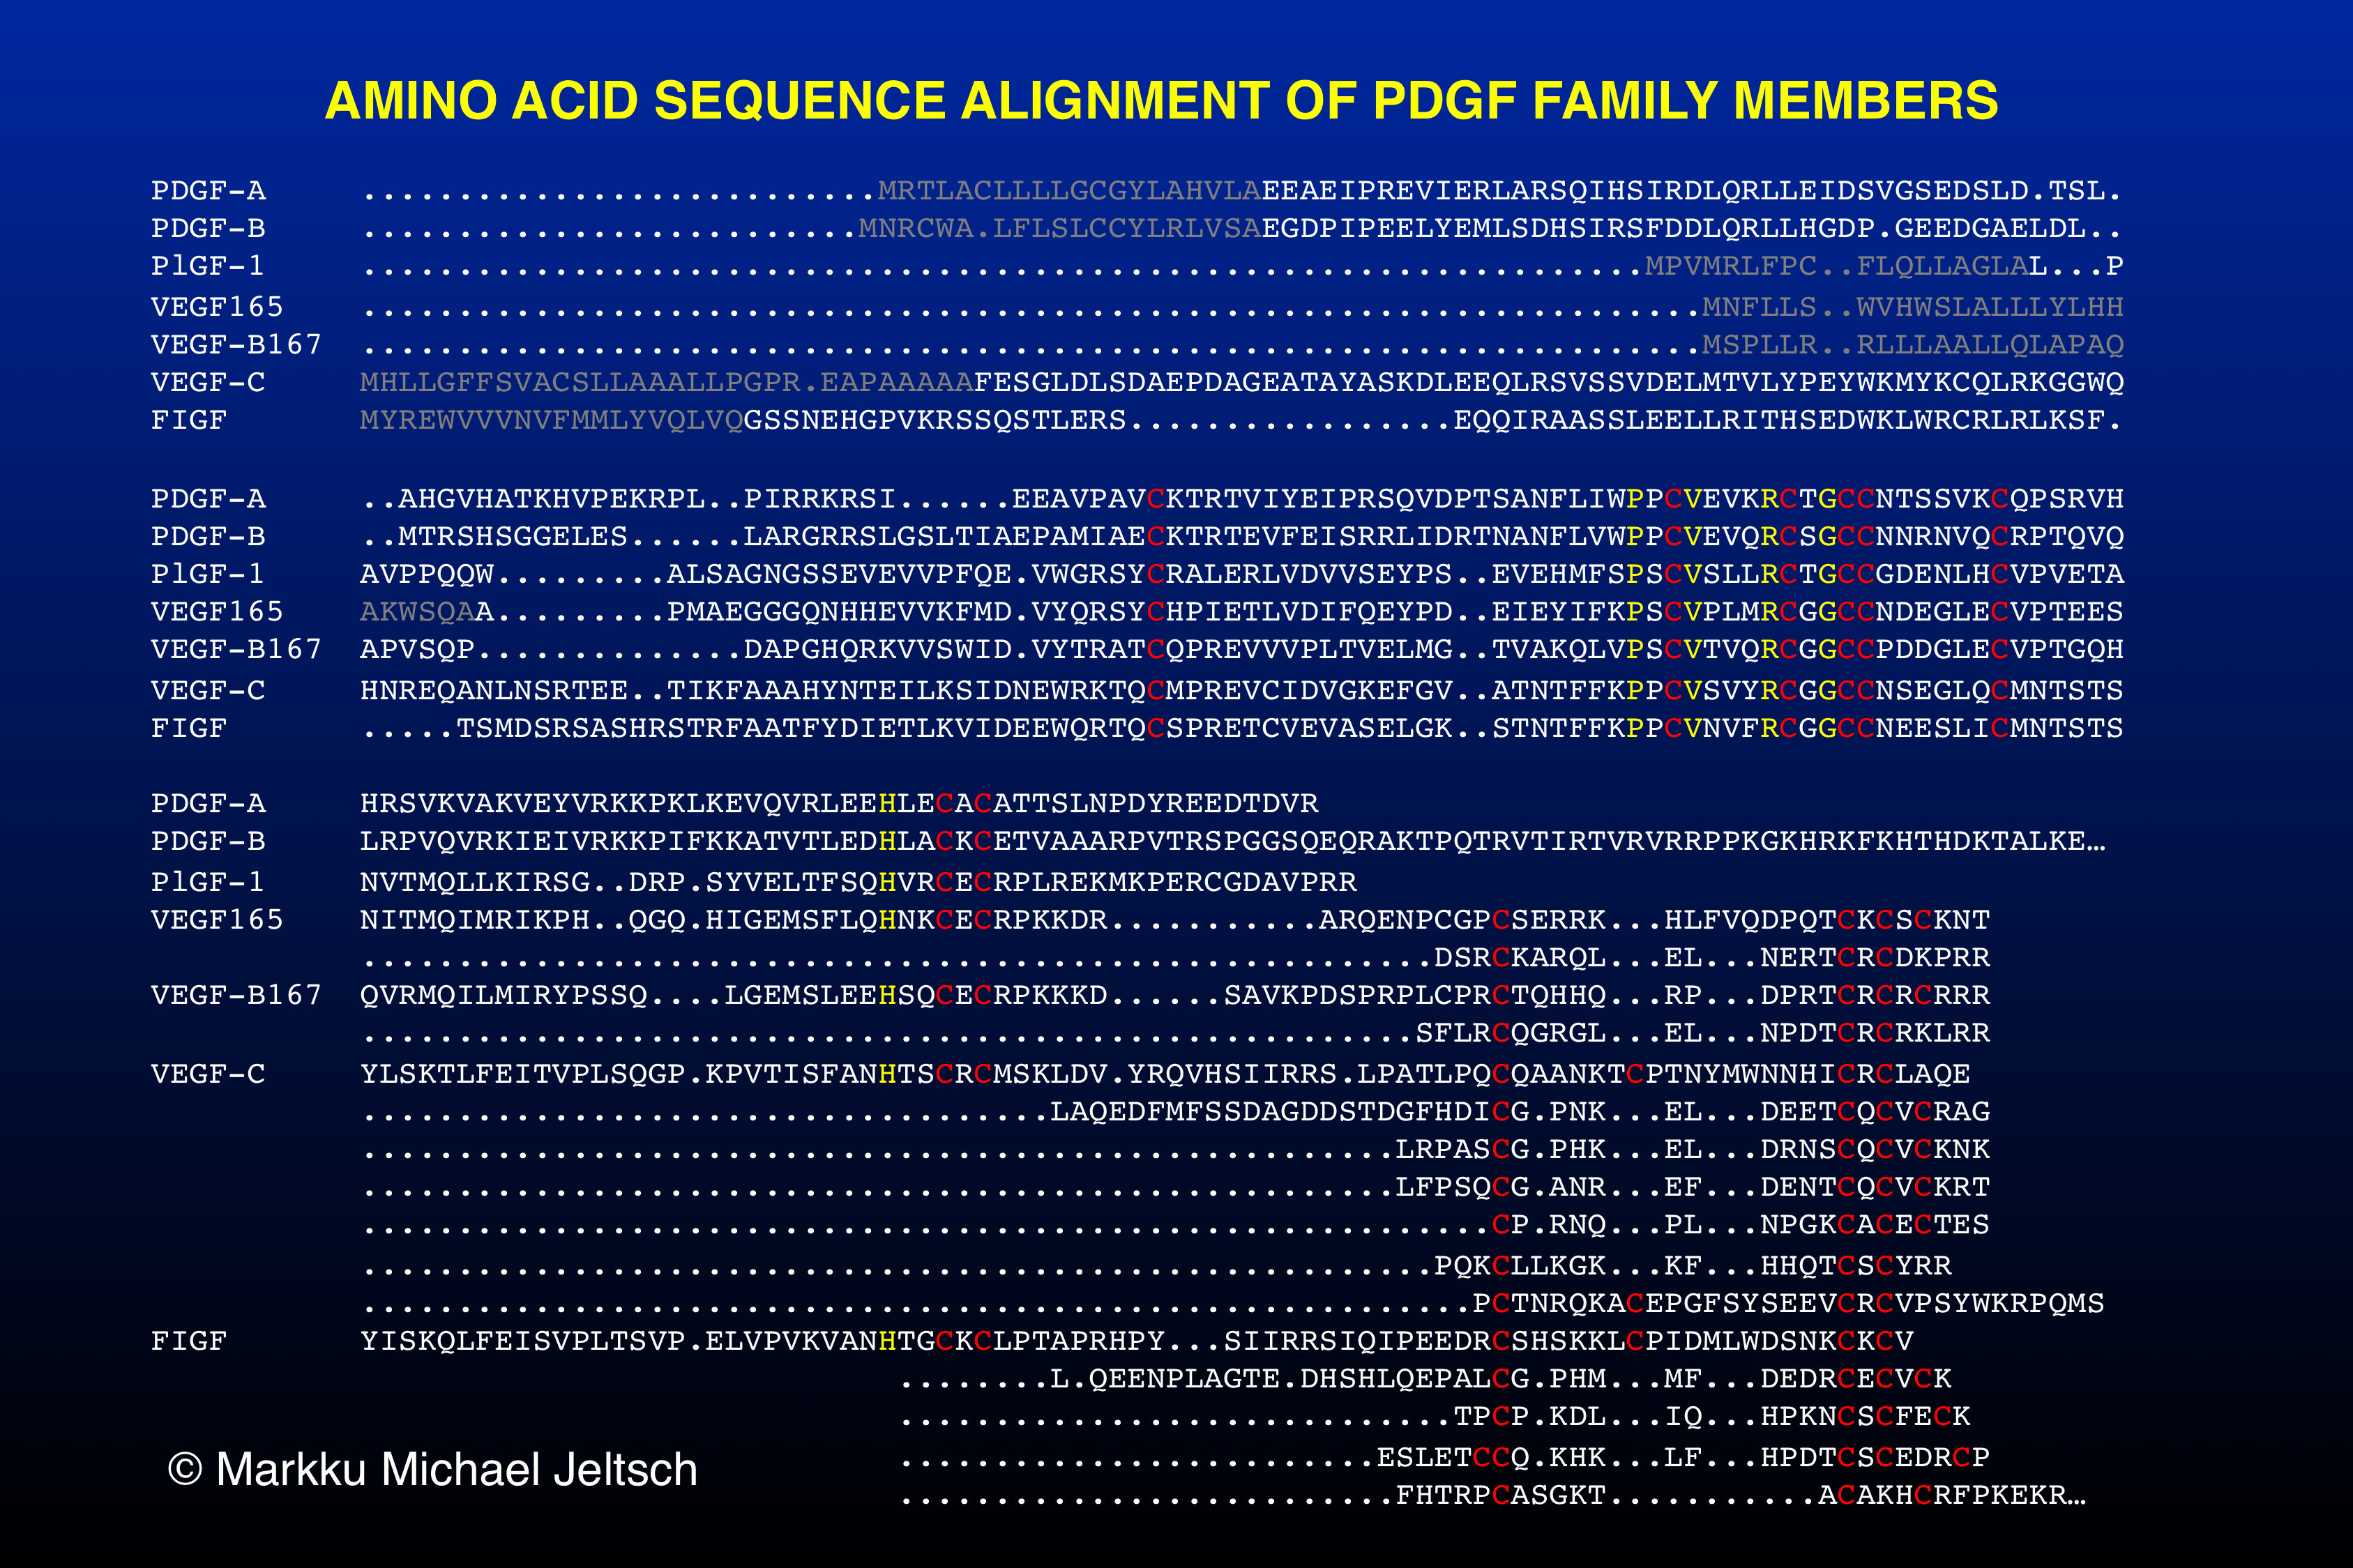 amino acid sequence alignment of PDGF family members